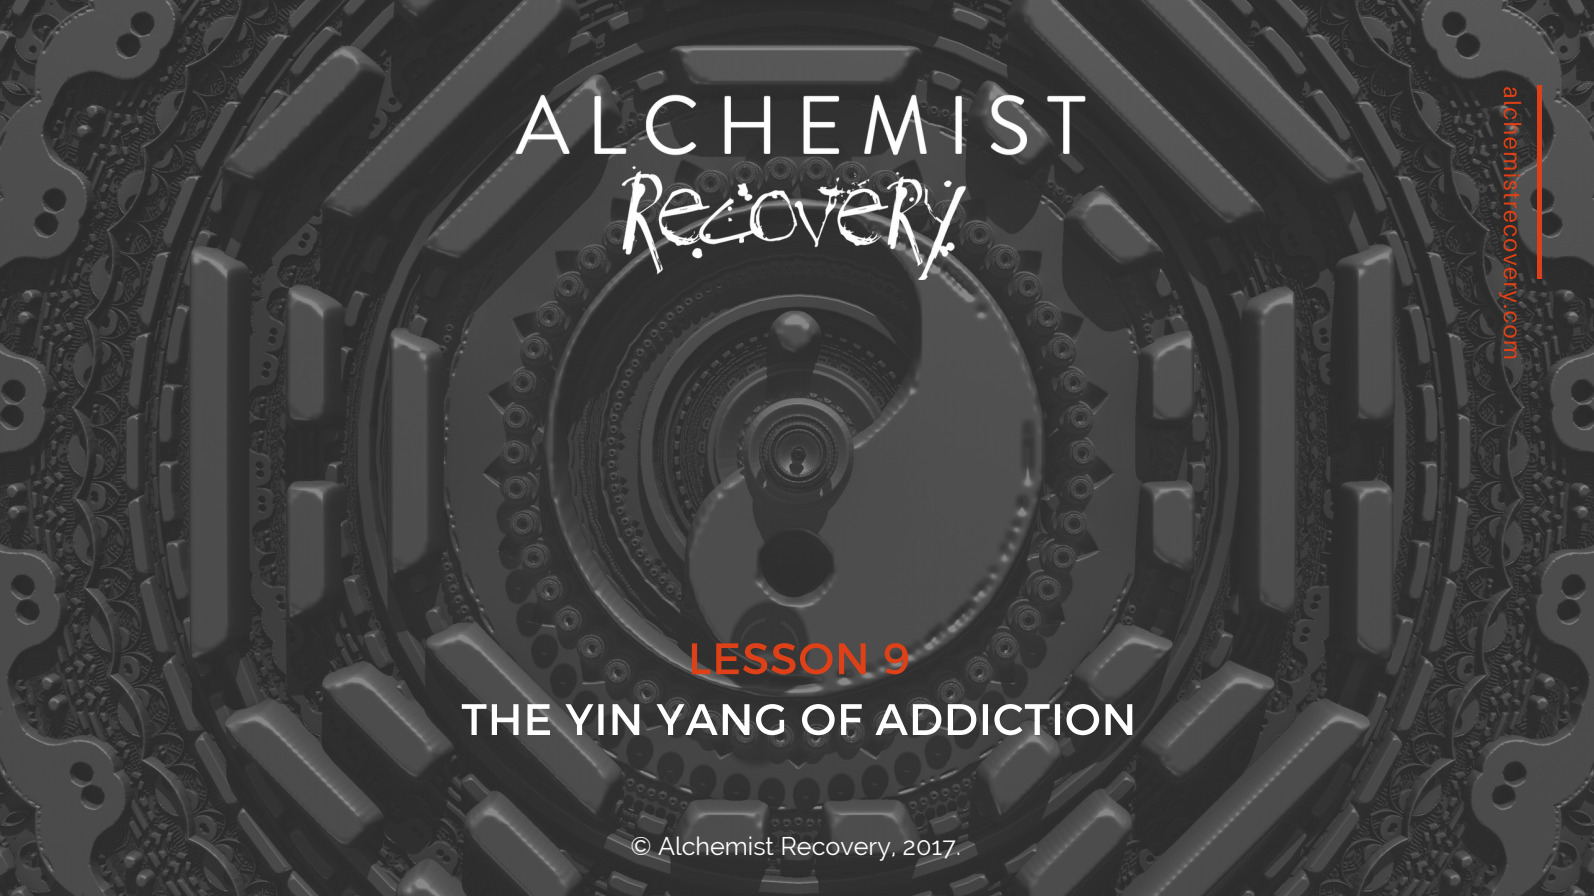 The Yin Yang of Addiction - This week we explore how the Traditional Oriental Medicine concept of Yin Yang fits into our modern language of addiction. Find out how your Yin/Too Little on the Inside works agains your Yang/Too Much from the Outside. We'll explore these basic, simple ideas that lead to bid, deep insights!